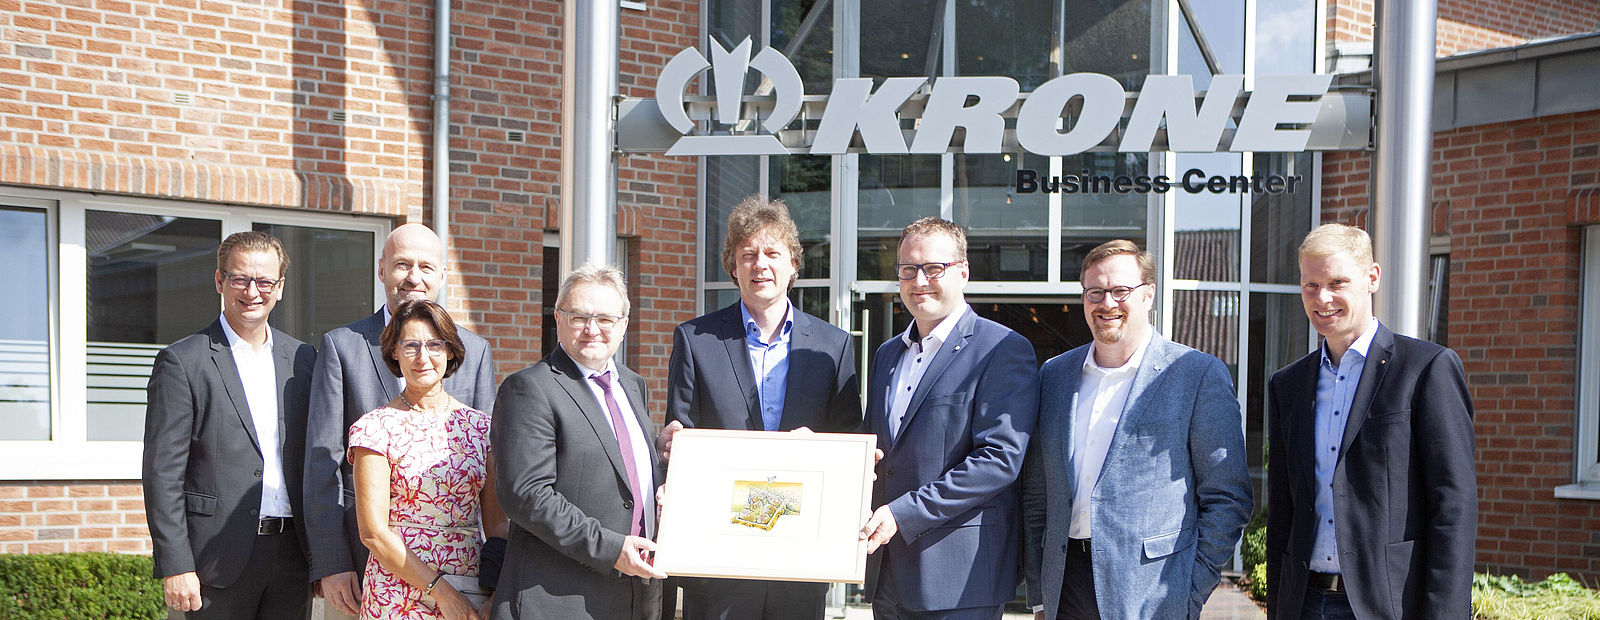 Krone Business Center in Haselünne officially opened